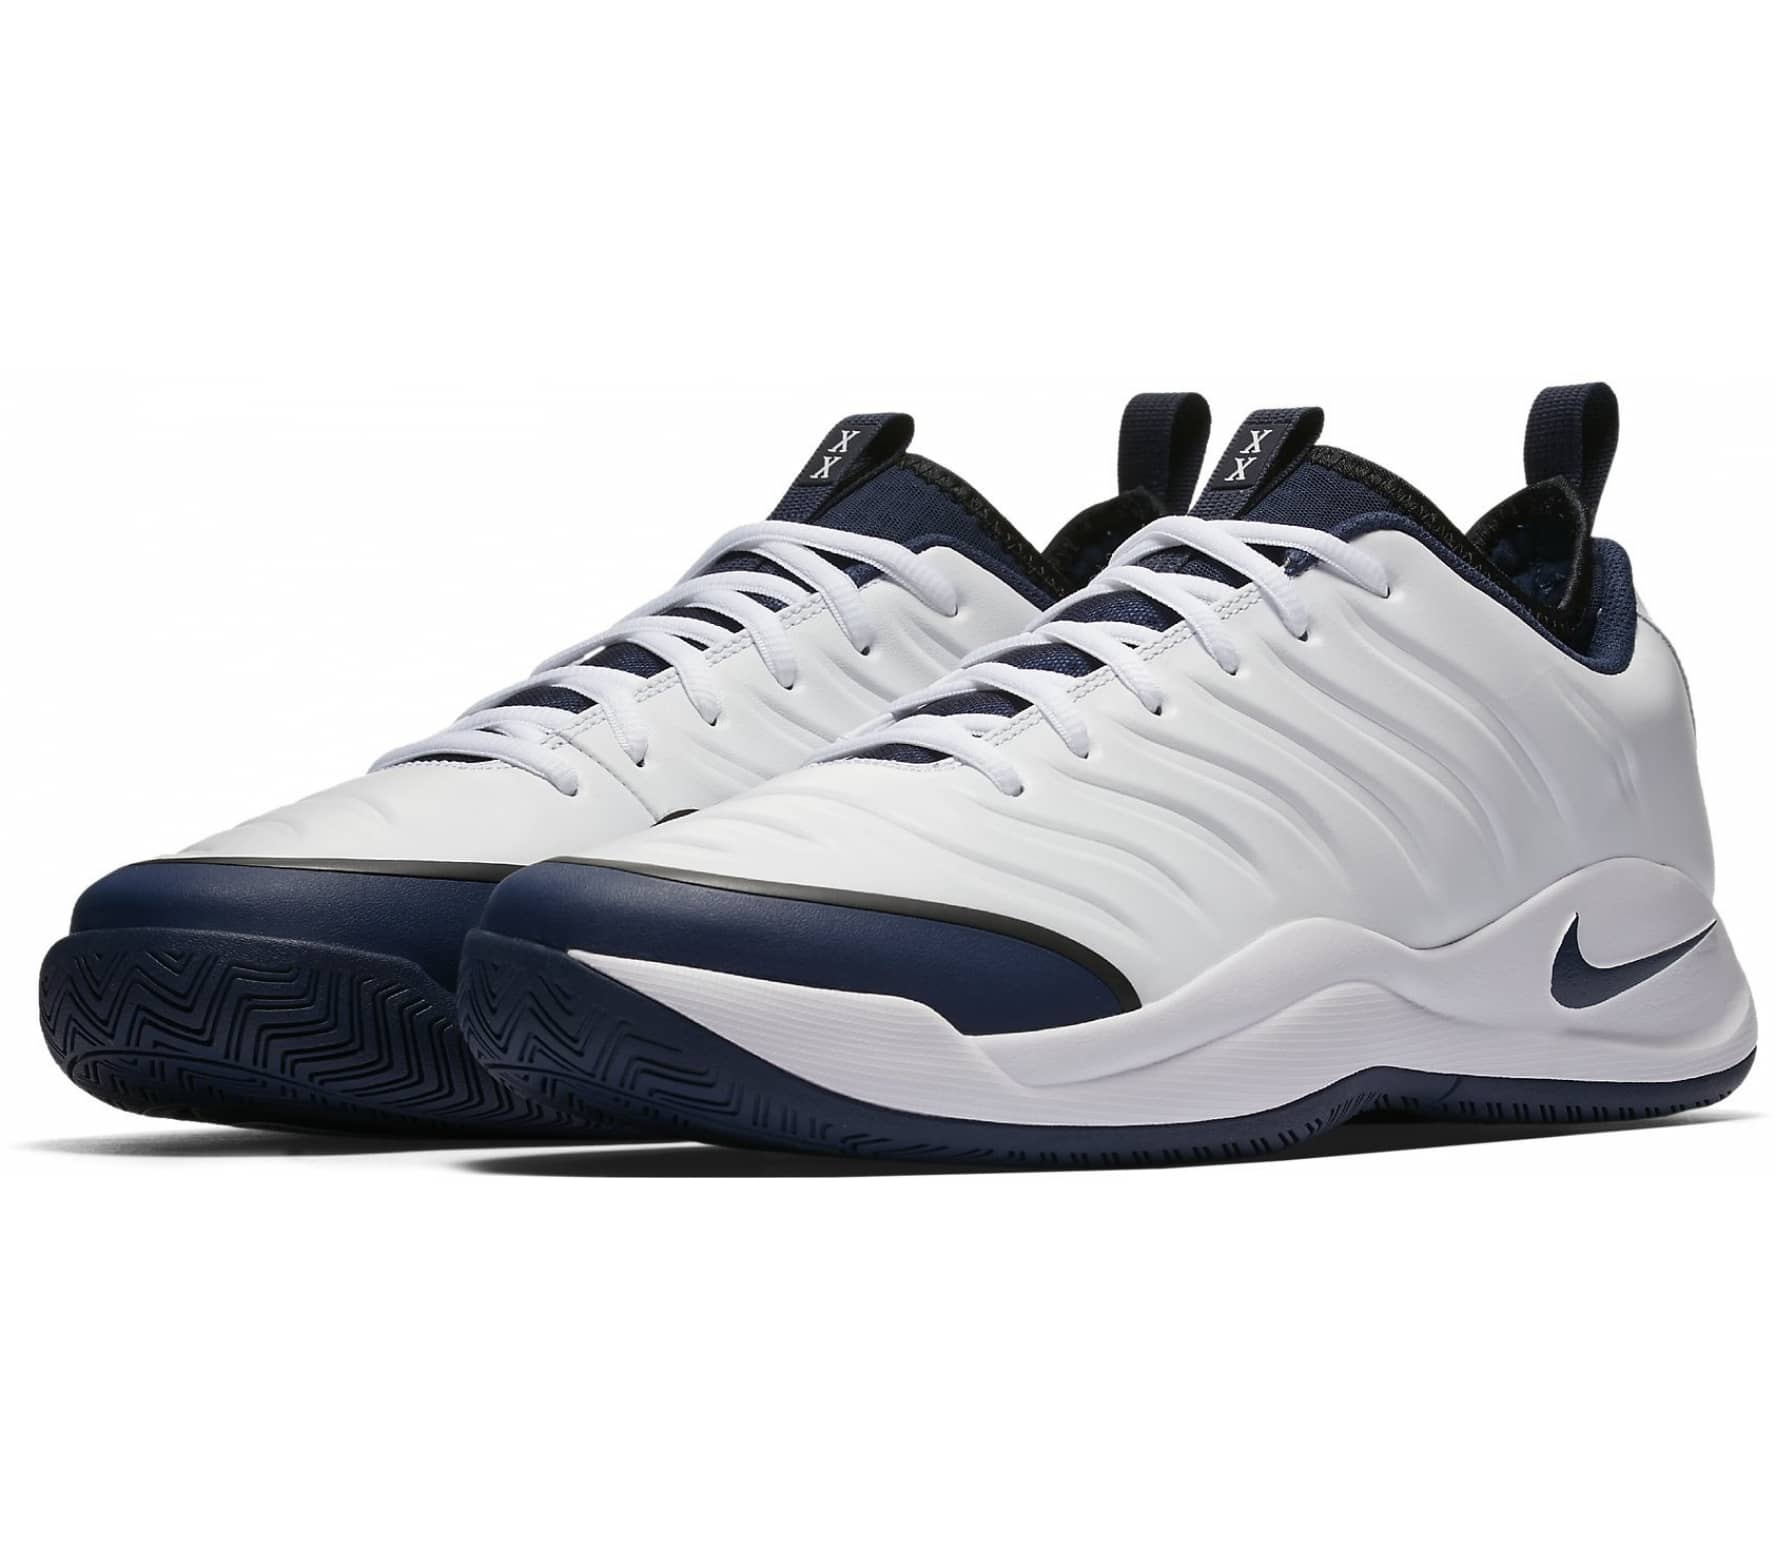 Nike Oscillate Tennis Shoes